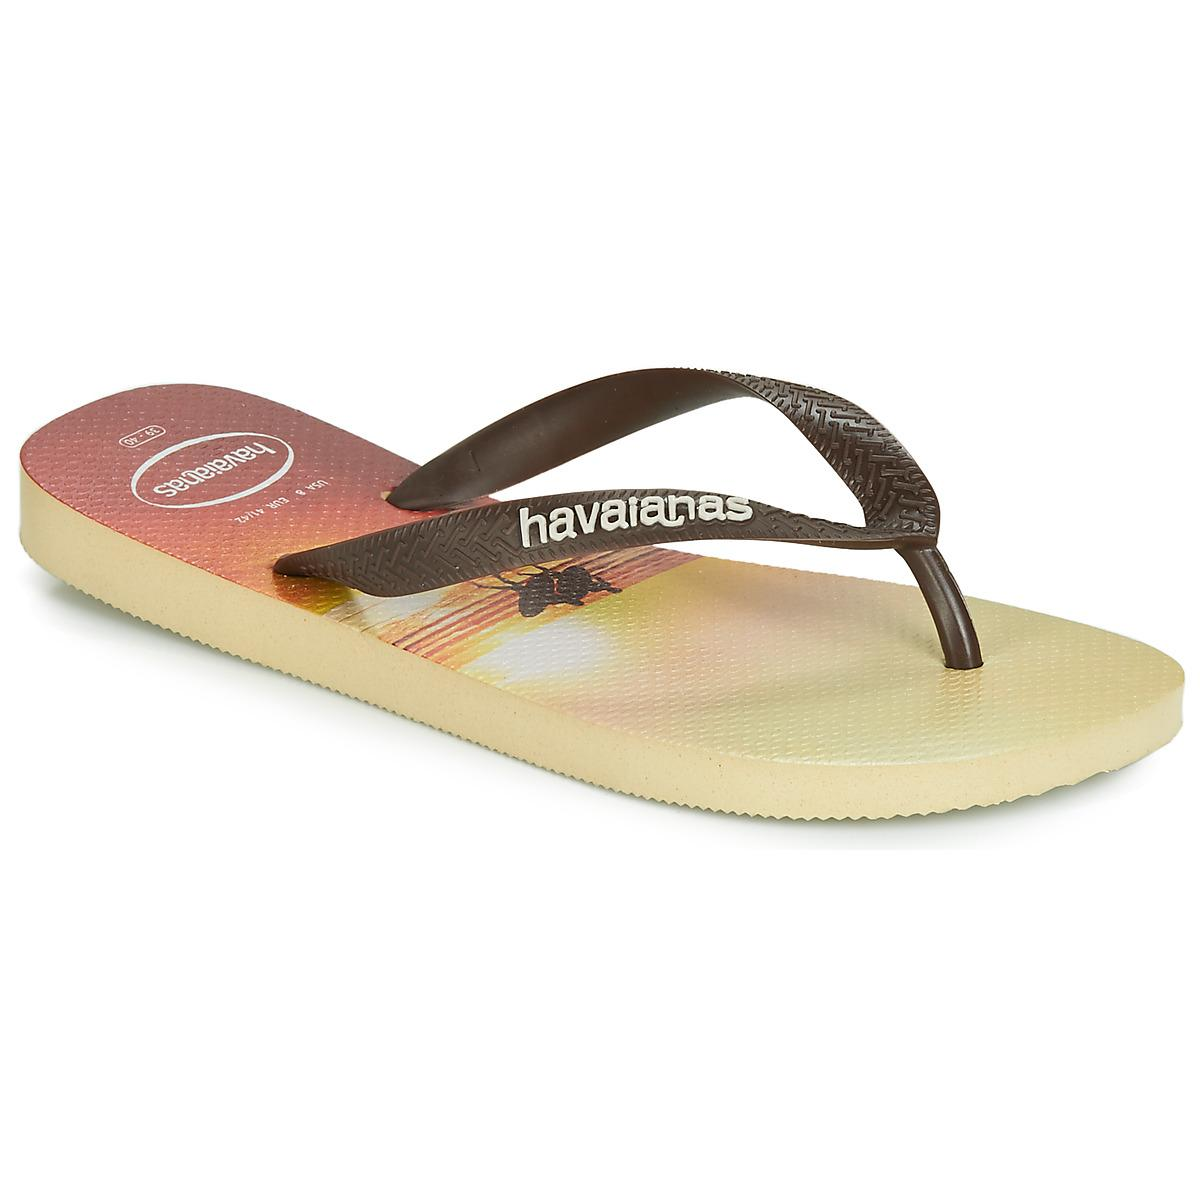 309a08368 Havaianas Hype Flip Flops   Sandals (shoes) in Natural for Men - Lyst